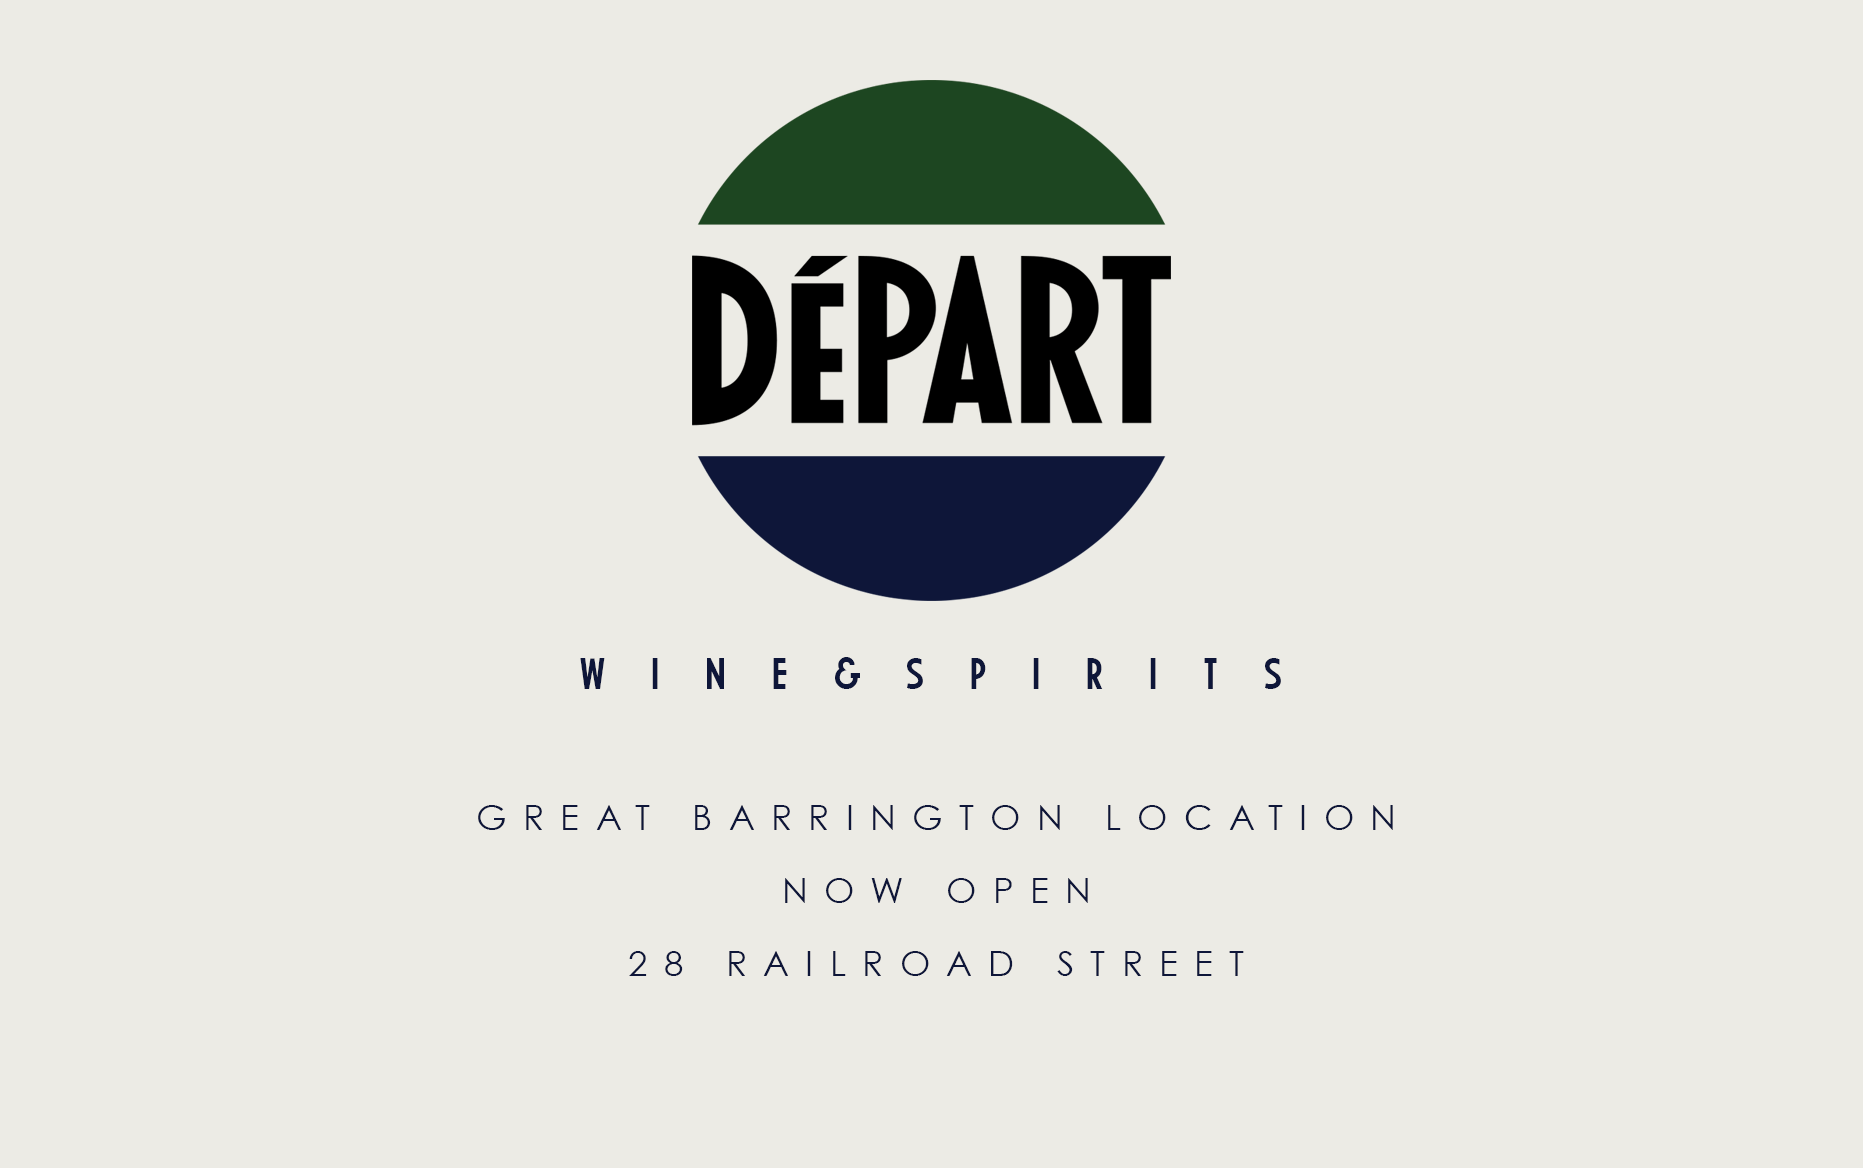 dayparr wine. arriving soon